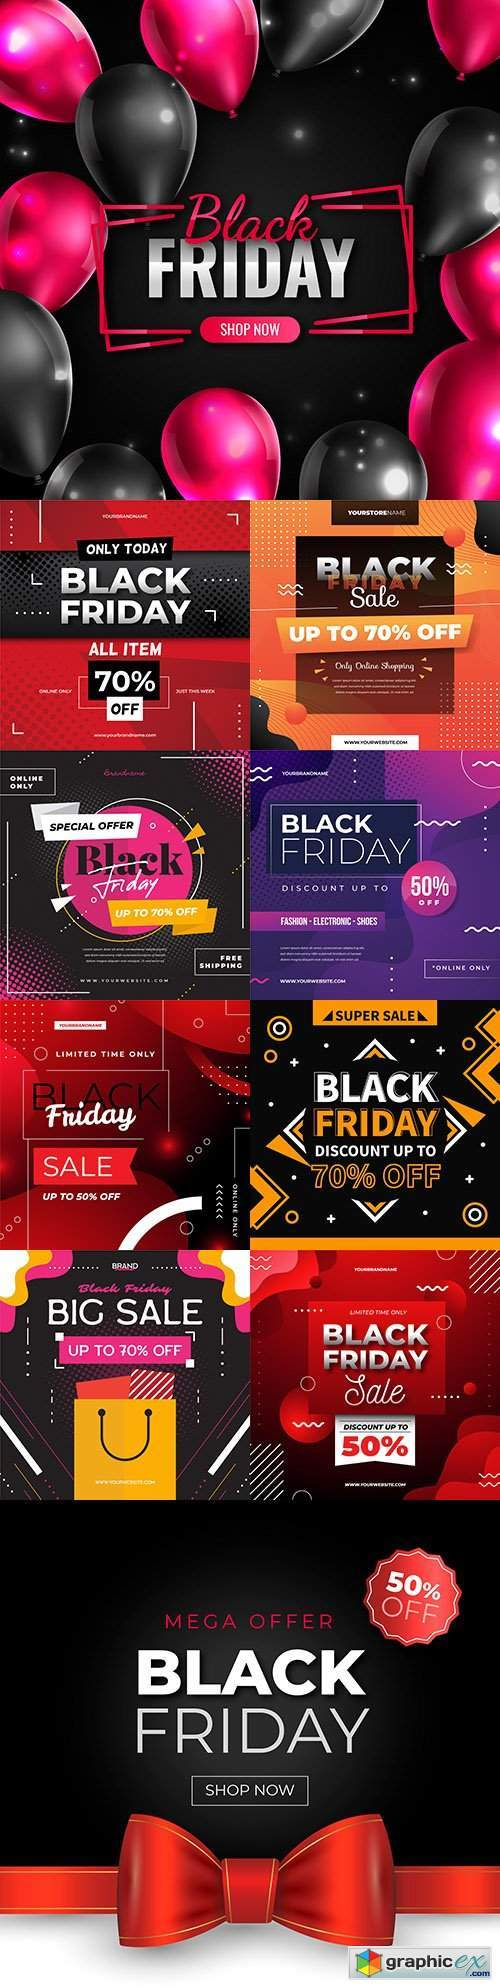 Black Friday and sale special design illustration 36